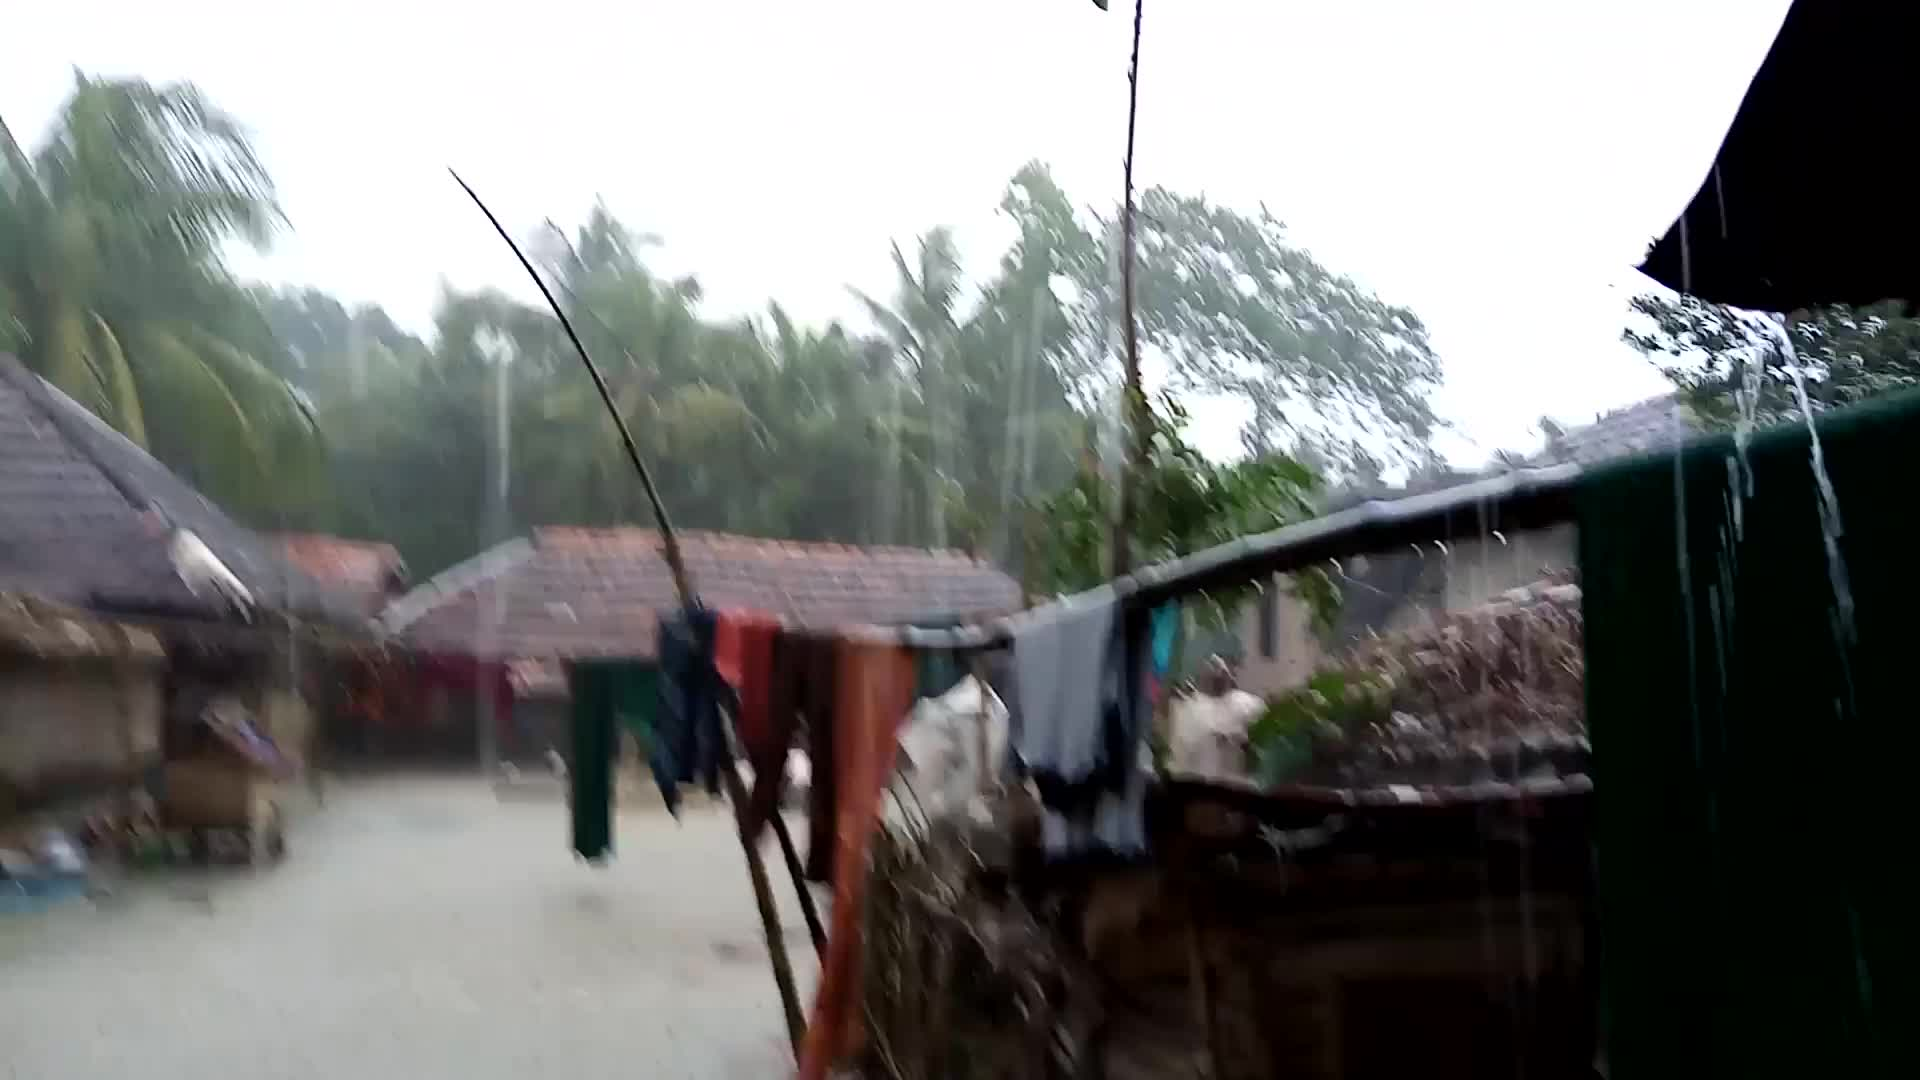 one of the most frightening things we can see here is the scene of heavy rains and thunderstorms in satkhira